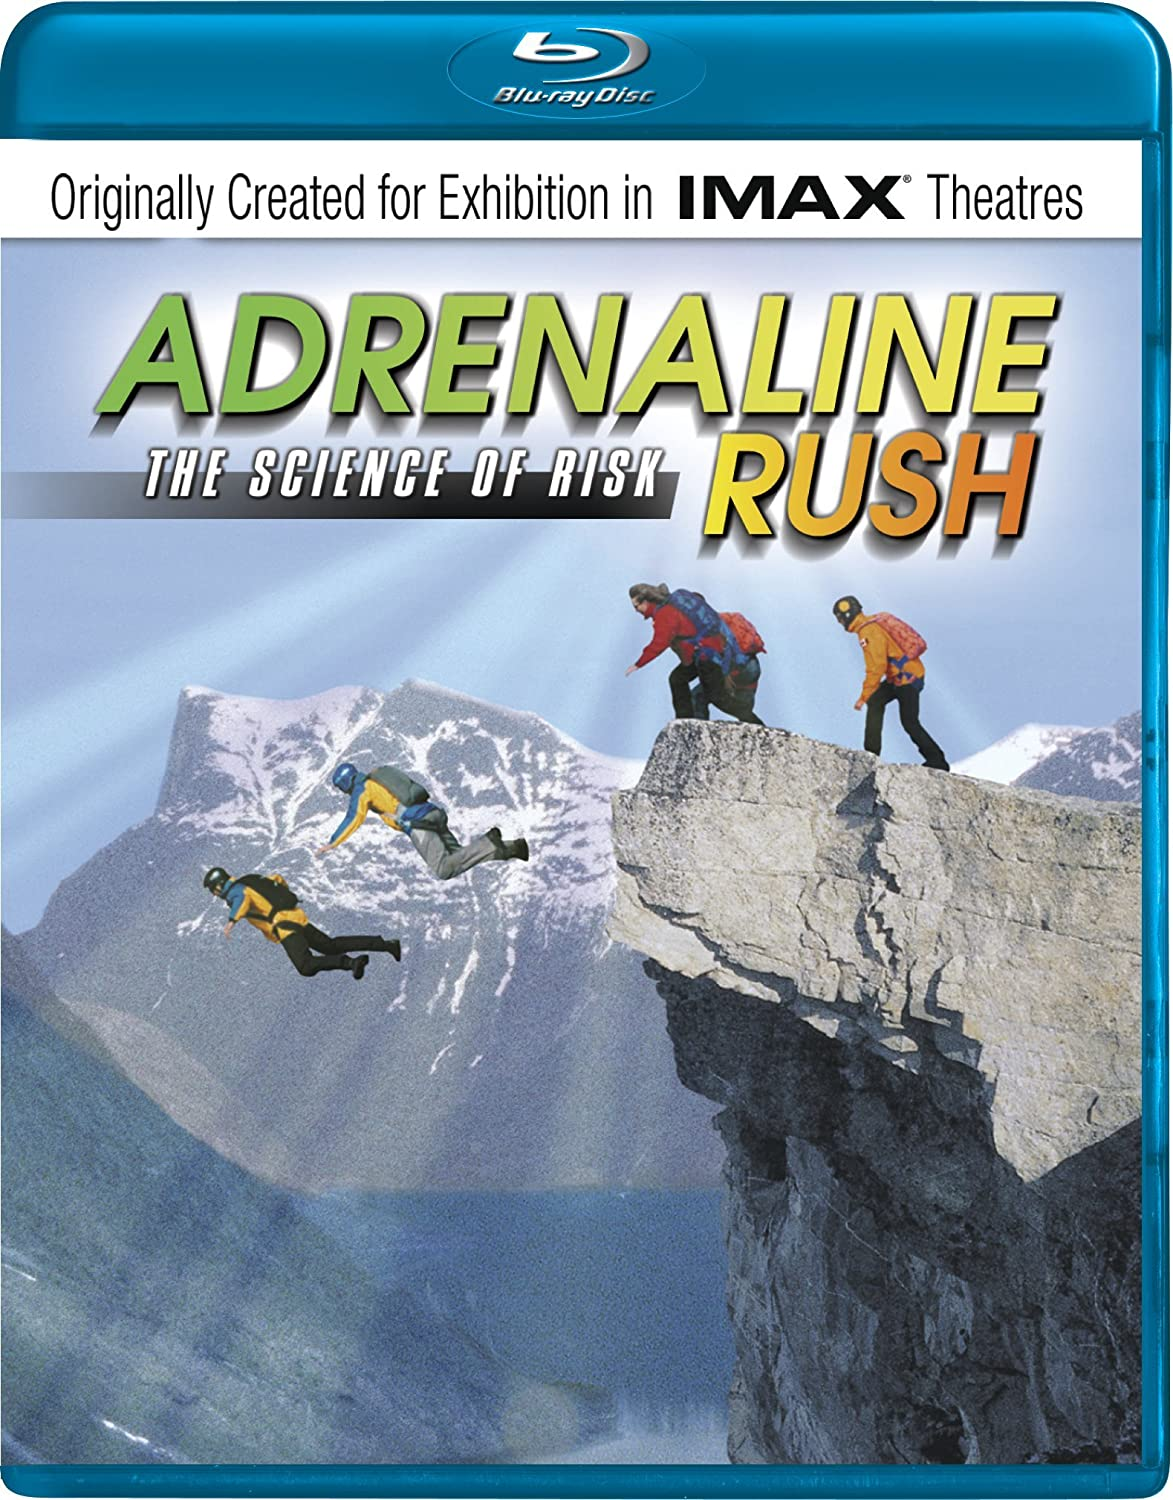 IMAX: Adrenaline Rush Ranking integrated 1st place - Science Risk Al sold out. of The